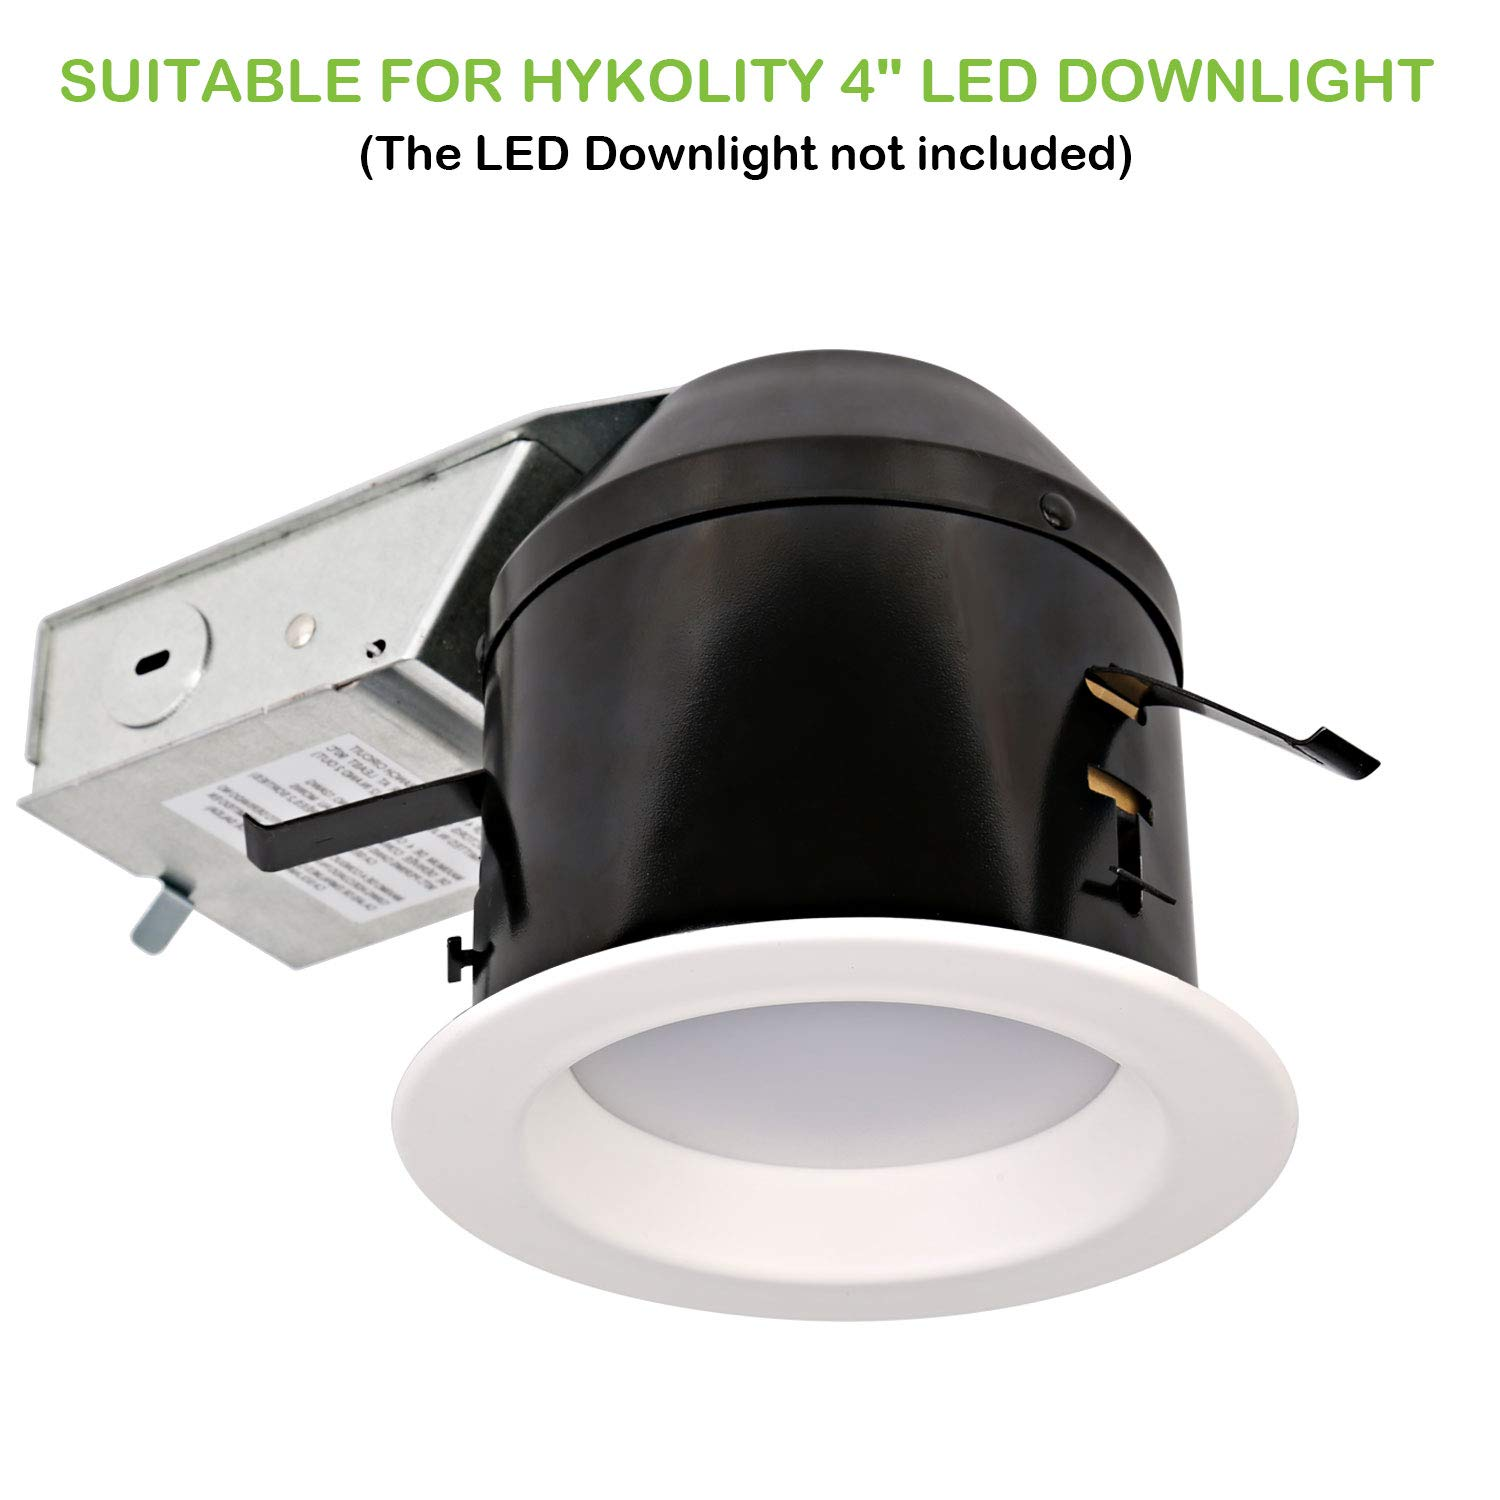 Hykolity 4 Inch Remodel Recessed Light Can Housing 12 Pack, Shallow Type Airtight IC Housing with TP24 Connector for LED Recessed Downlight Retrofit Kit,ETL Listed by hykolity (Image #3)